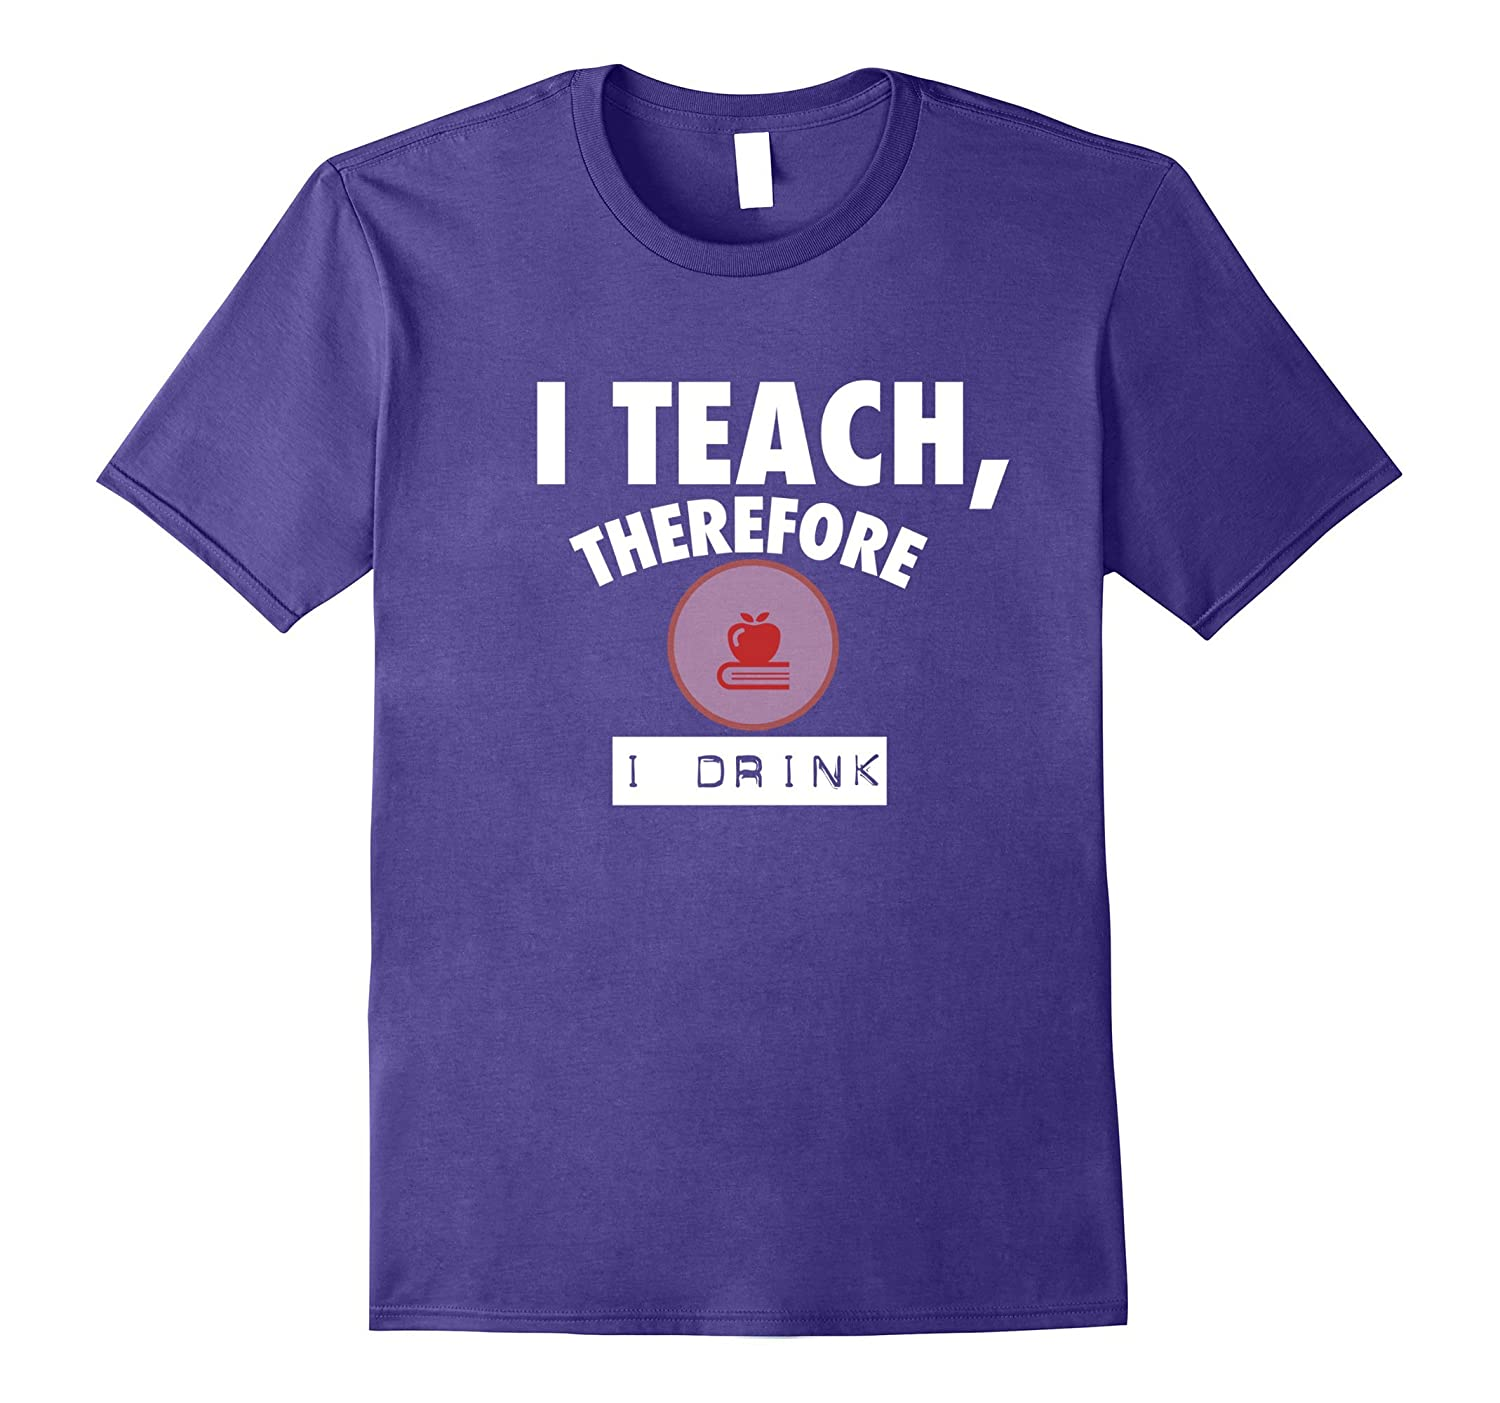 Funny Teaching T-shirt - I TEACH THEREFORE I DRINK-Art